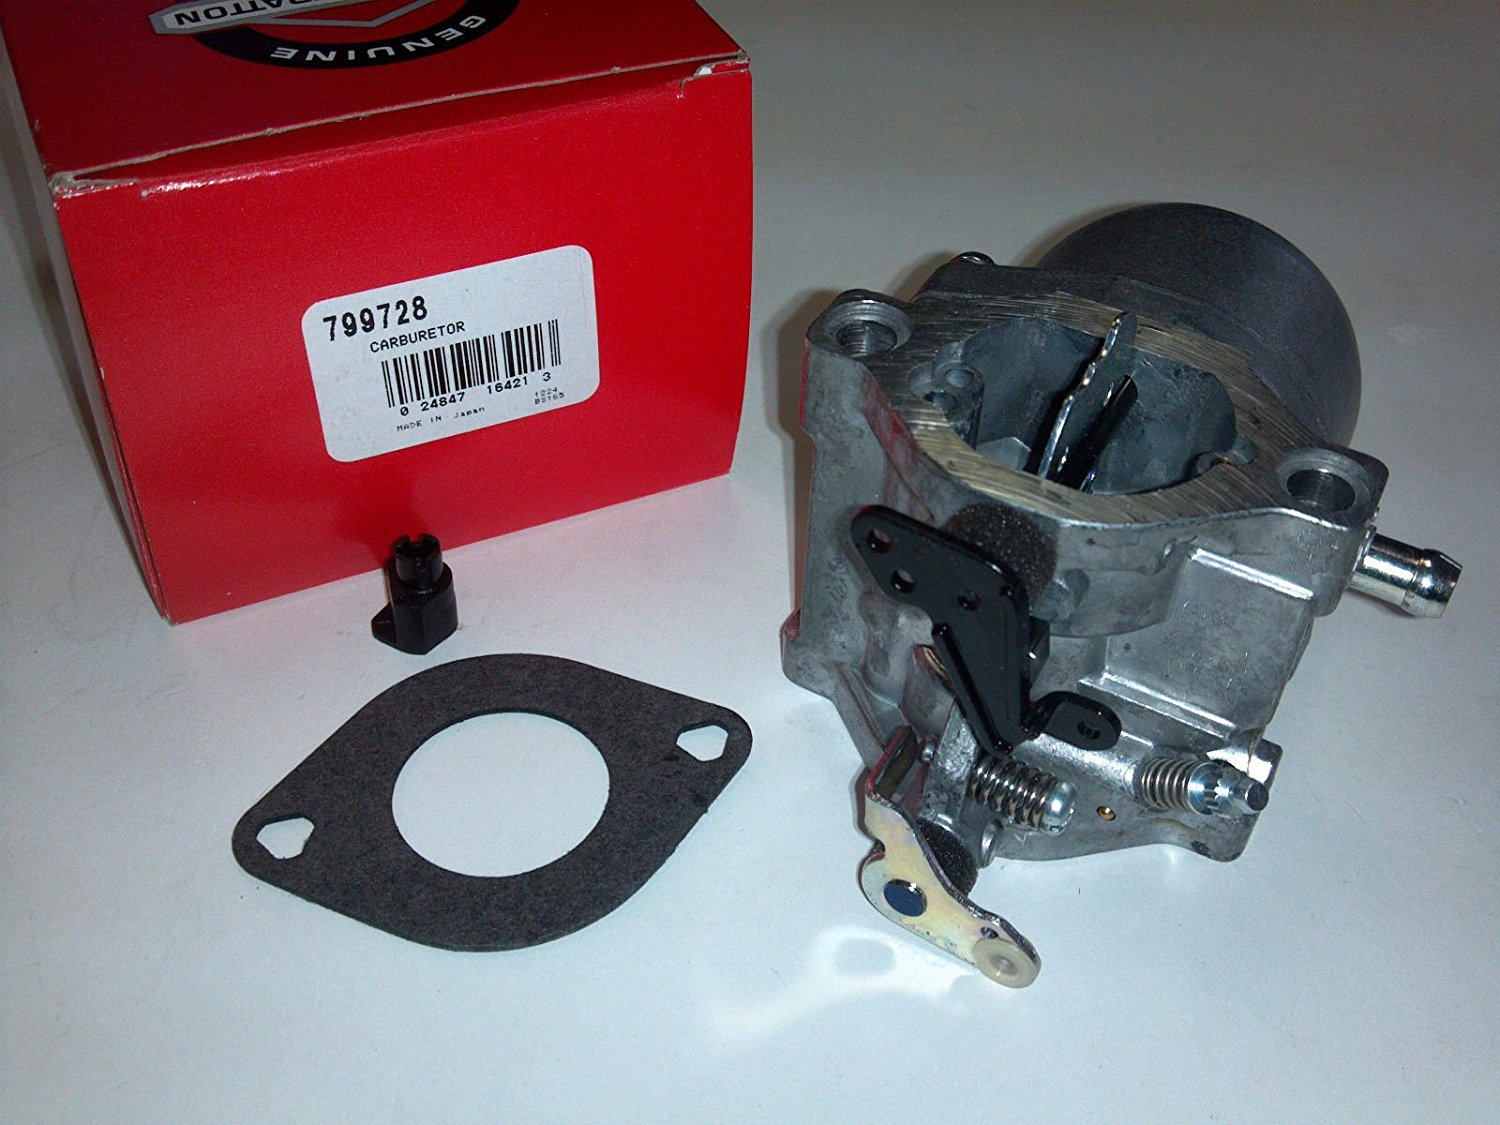 Briggs & Stratton 799728 CARBURETOR OEM CARB ,,from# mowandsnow ,ket122351564410700